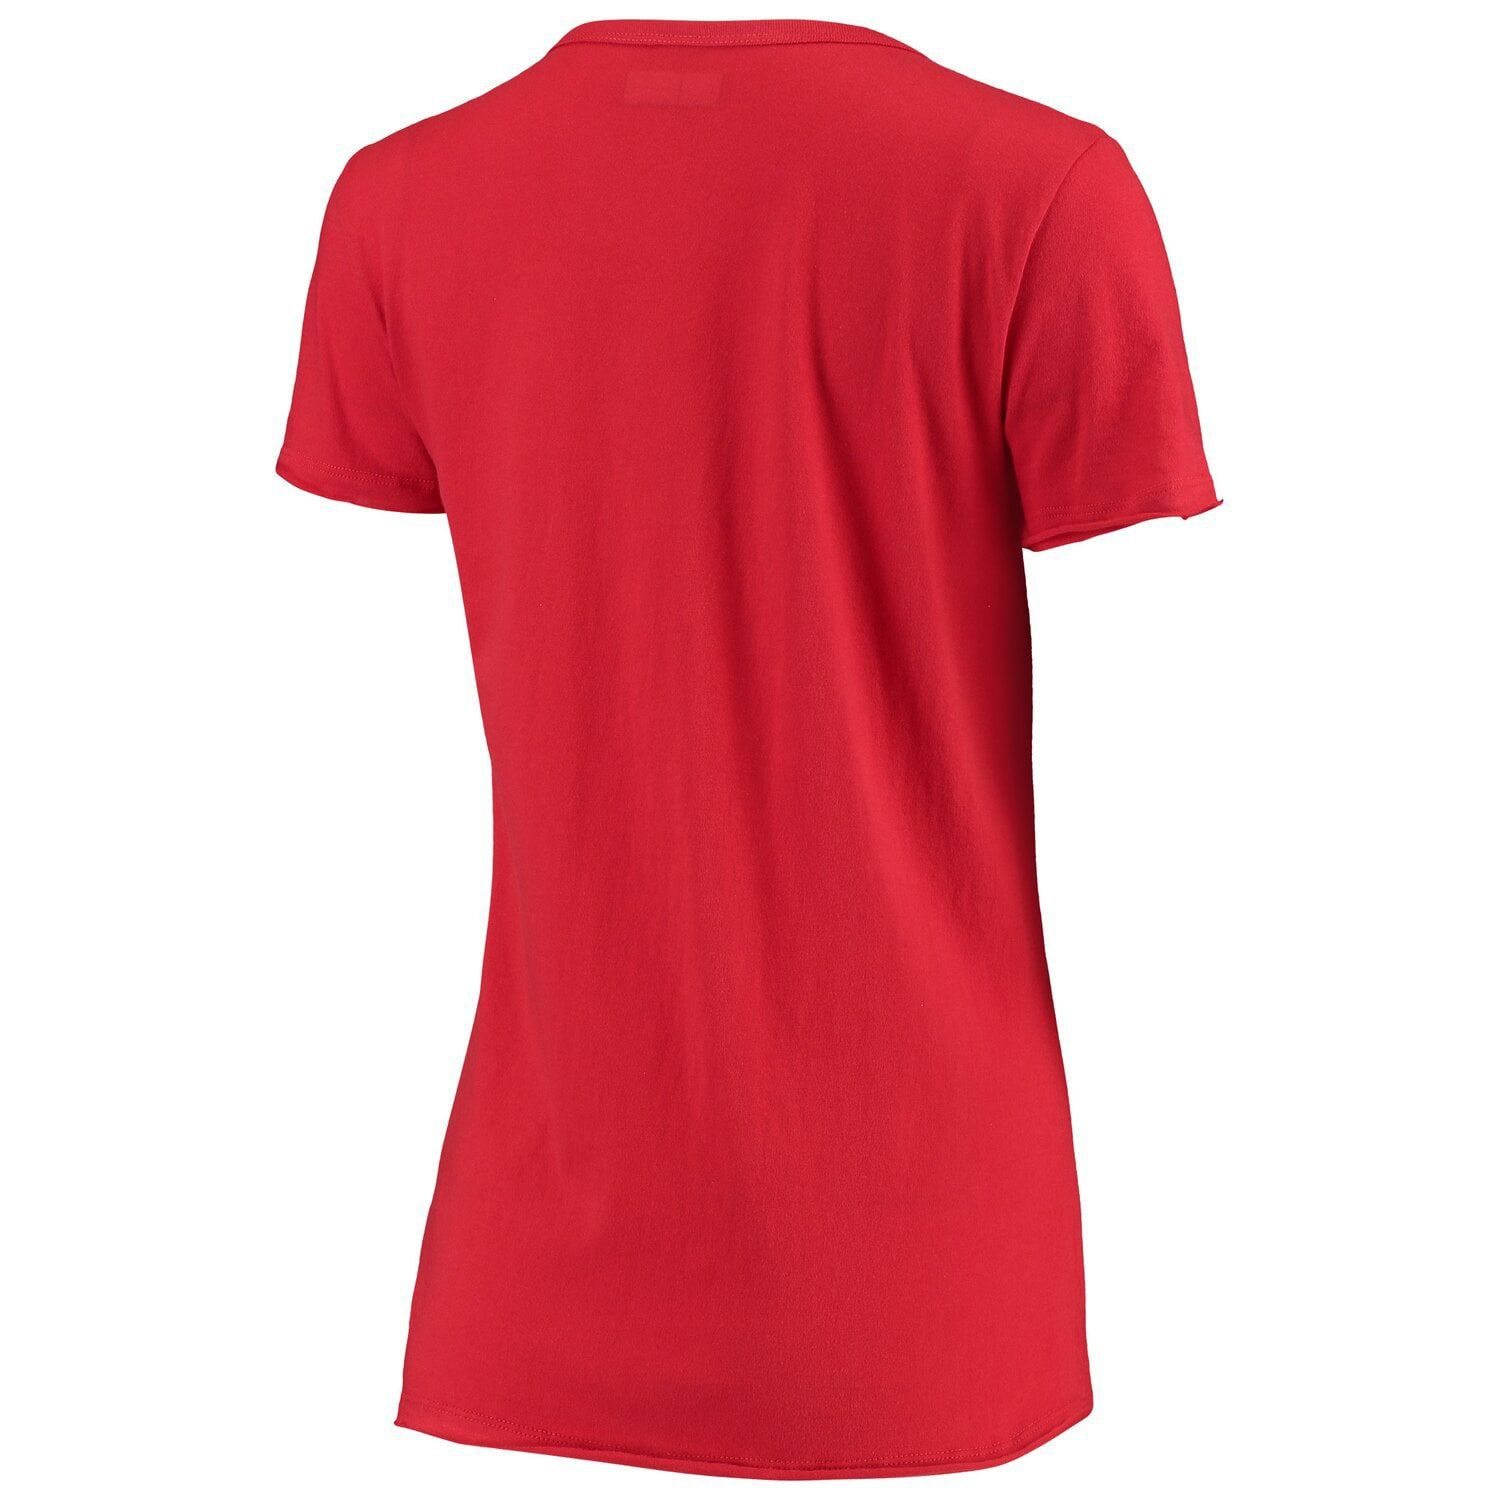 Women S New Era Scarlet San Francisco 49ers Gradient Glitter Choker V Neck T Shirt Affiliate San Sponsored Francisco Wom New Era V Neck T Shirt Chokers